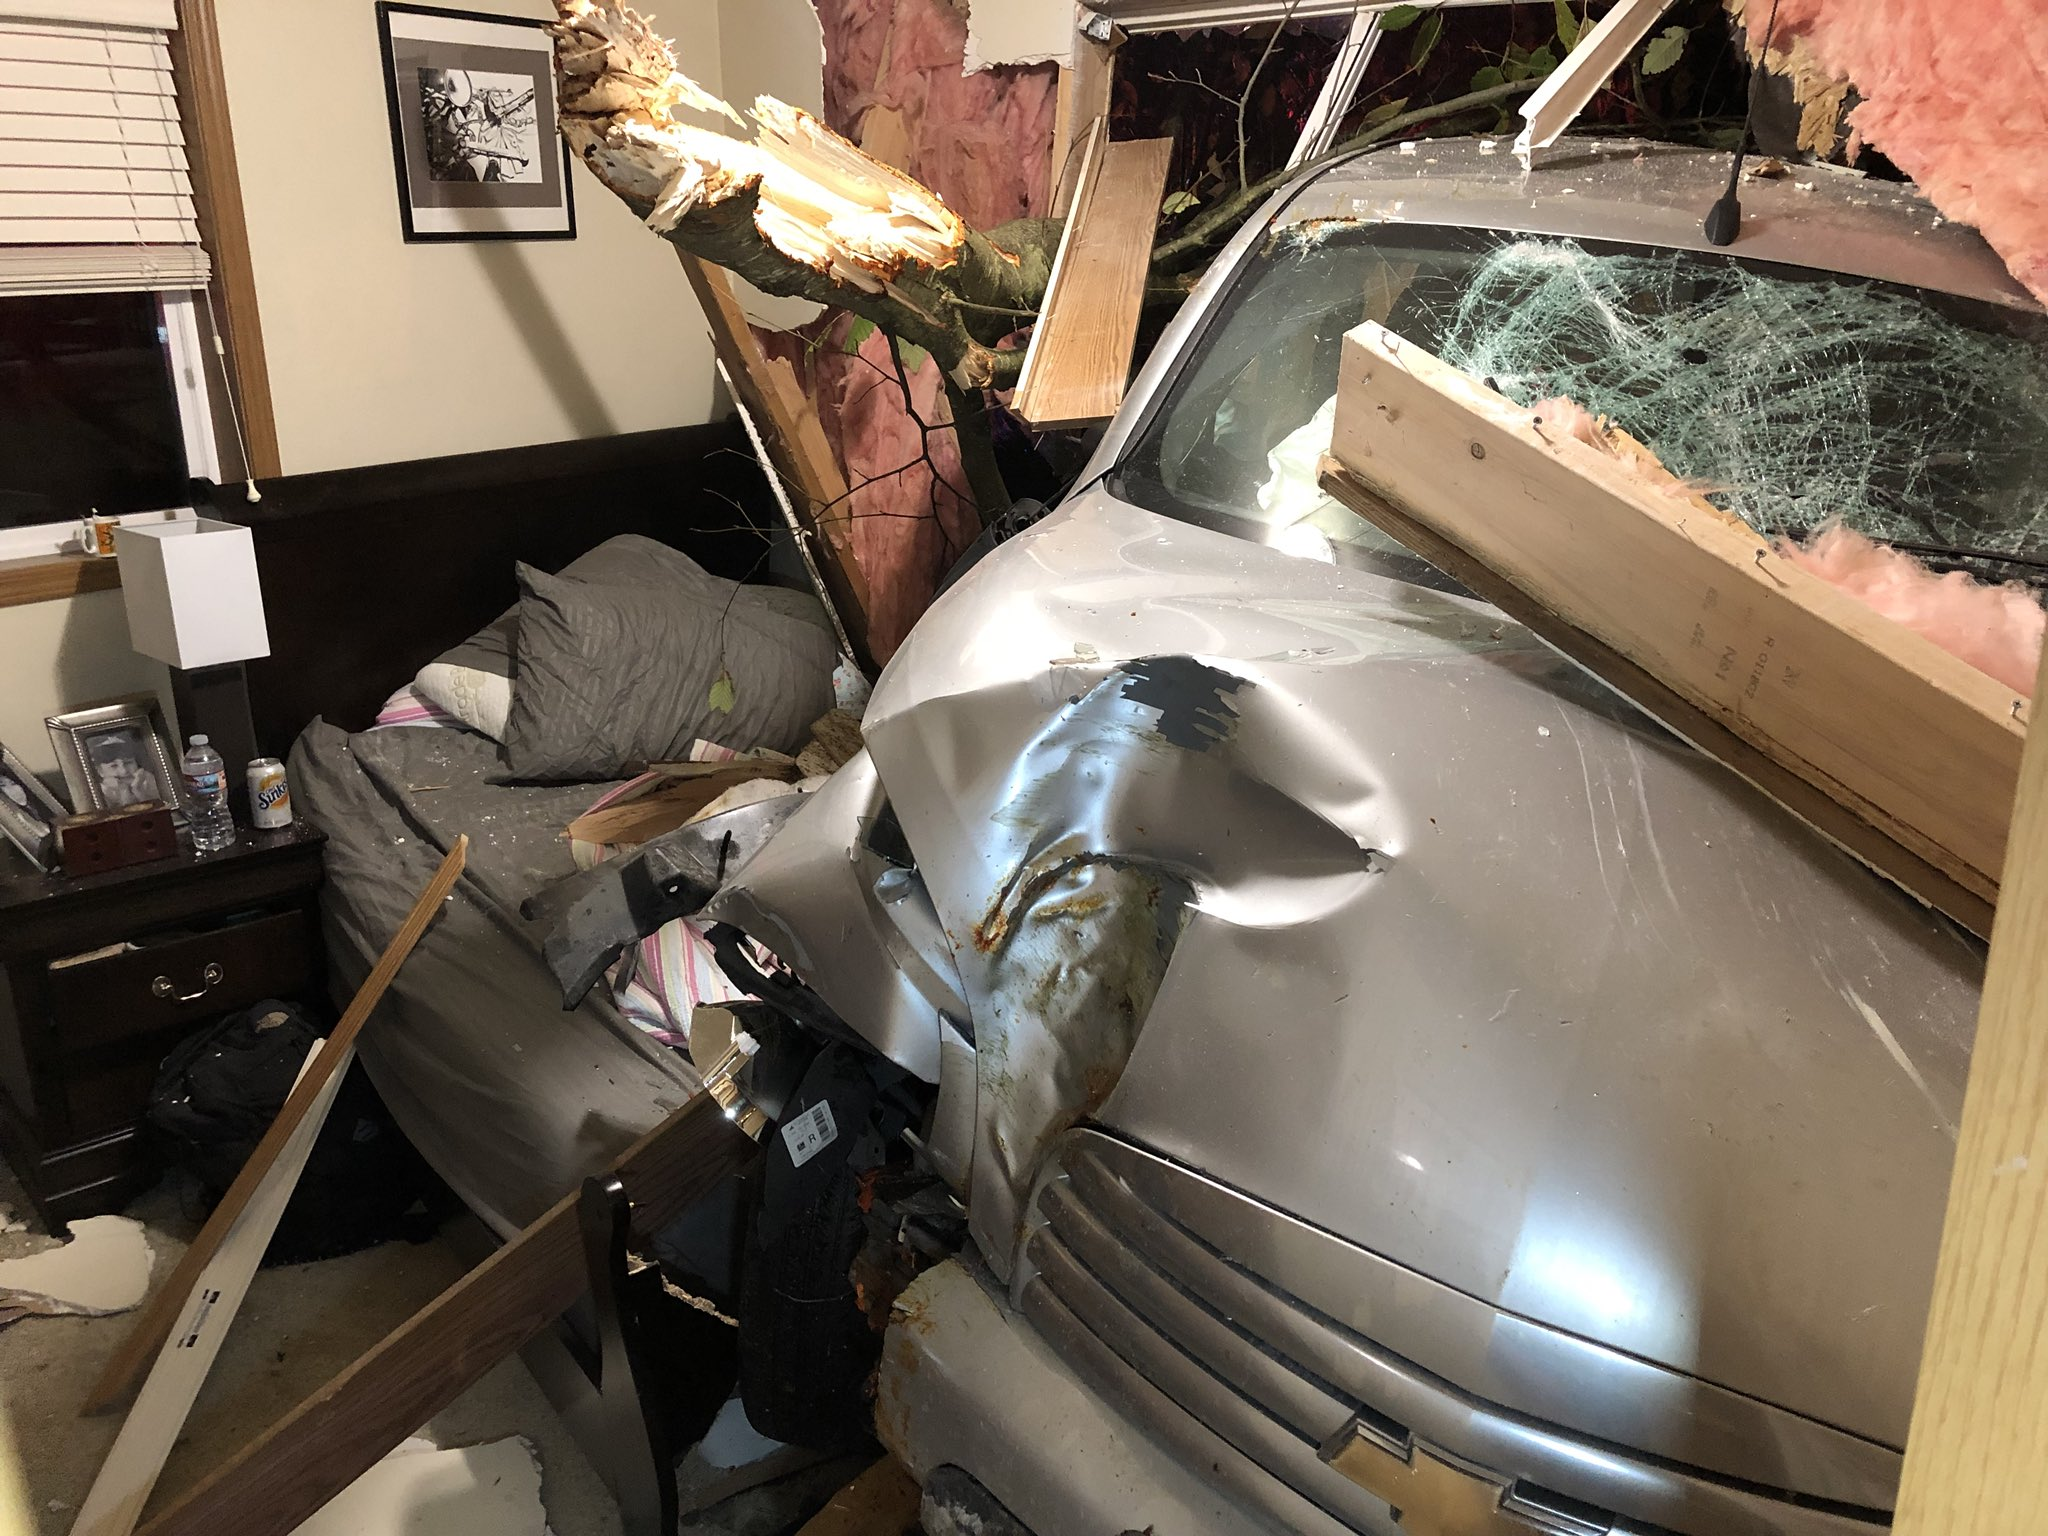 A car with two adults and a child crashed through a wall of a home in Federal Way overnight, injuring a woman in the bed on the other side.{&amp;nbsp;}(Photo credit: South King Fire and Rescue)<p></p>